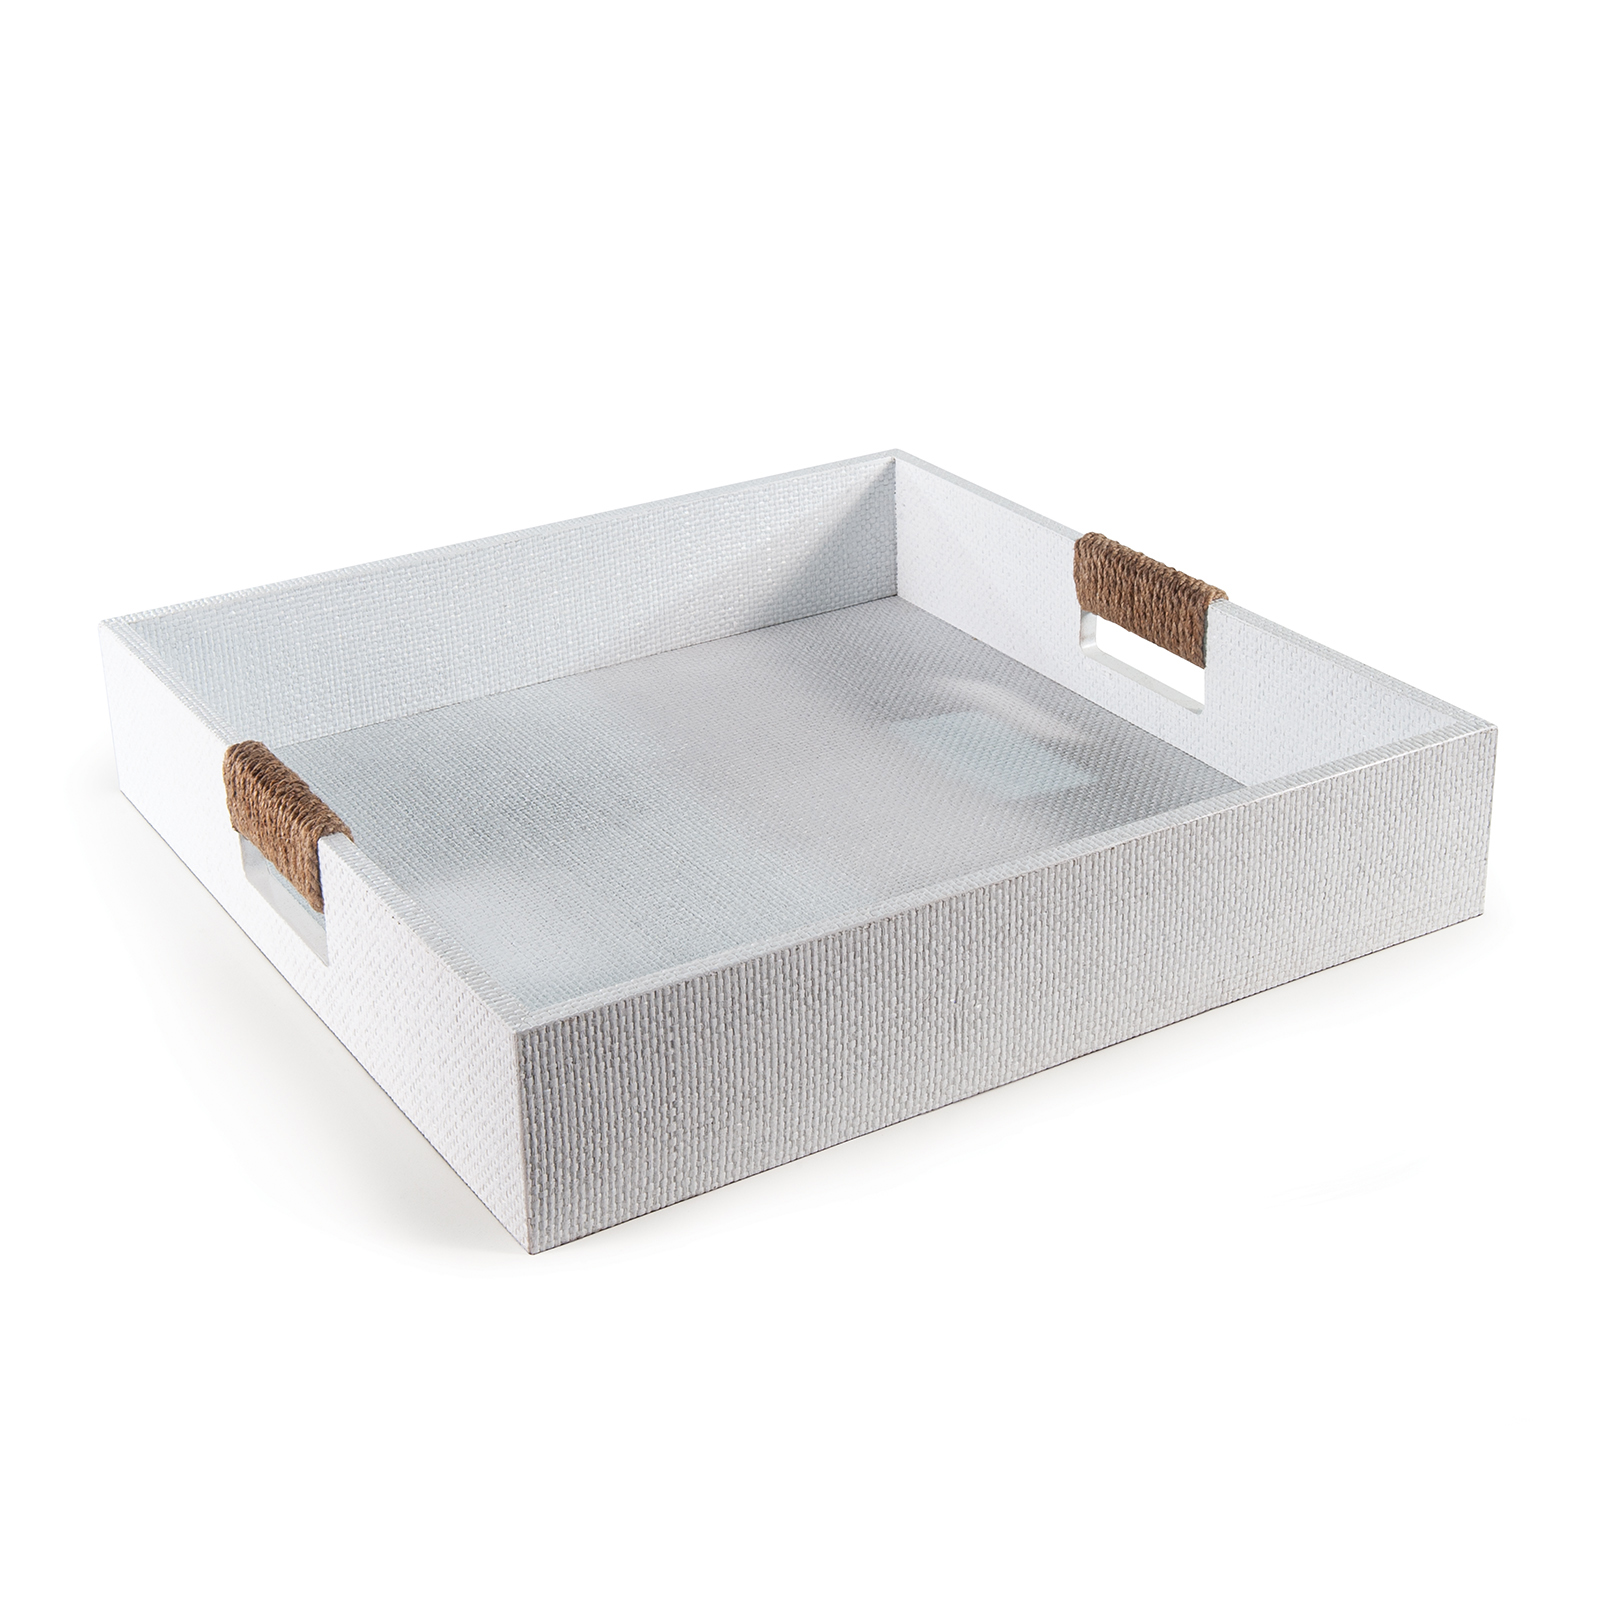 Logia Square Tray Large White | Regina Andrew